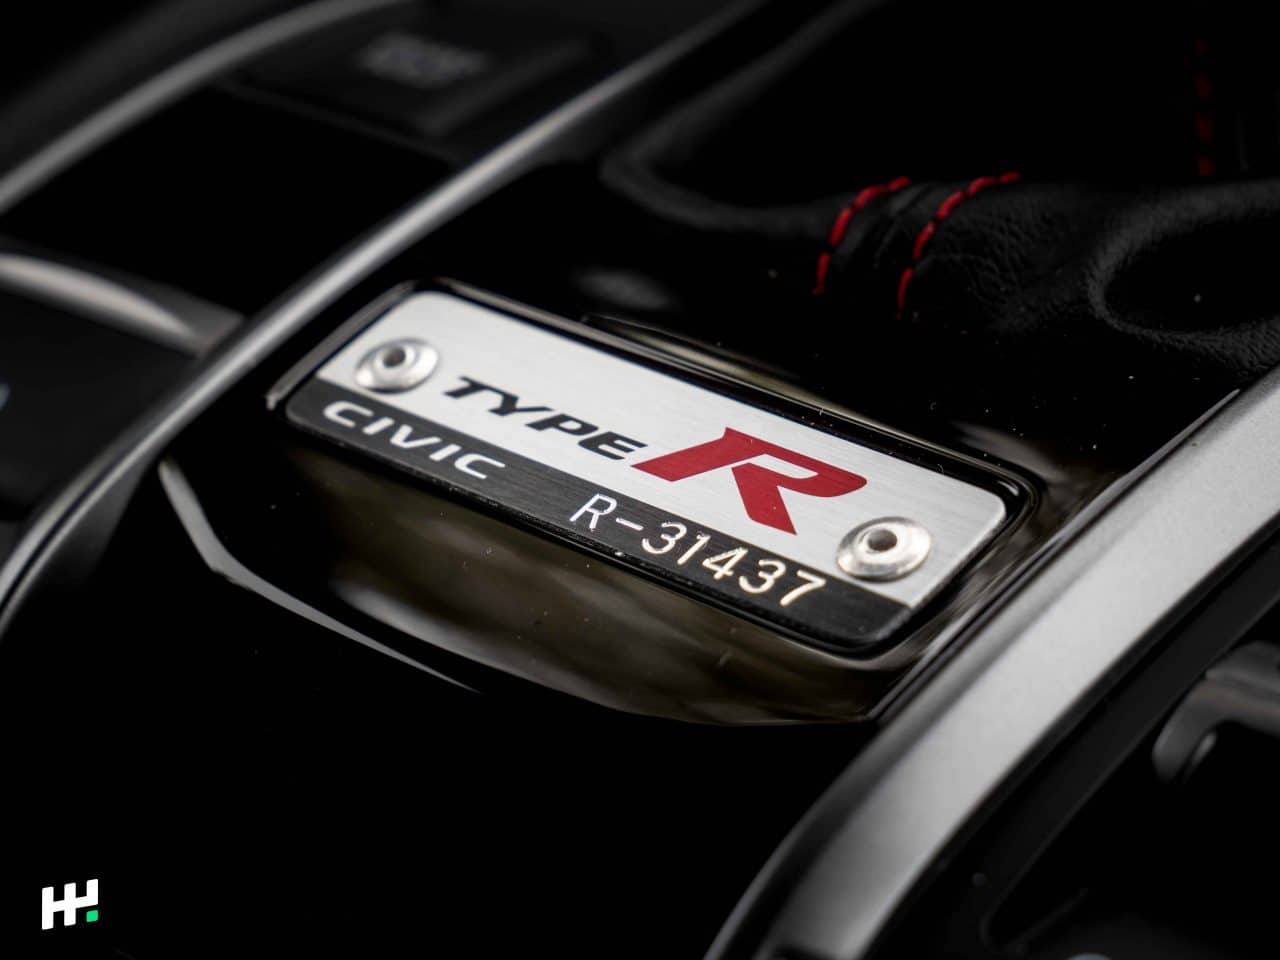 Plaque de la Honda Civic Type R FK8